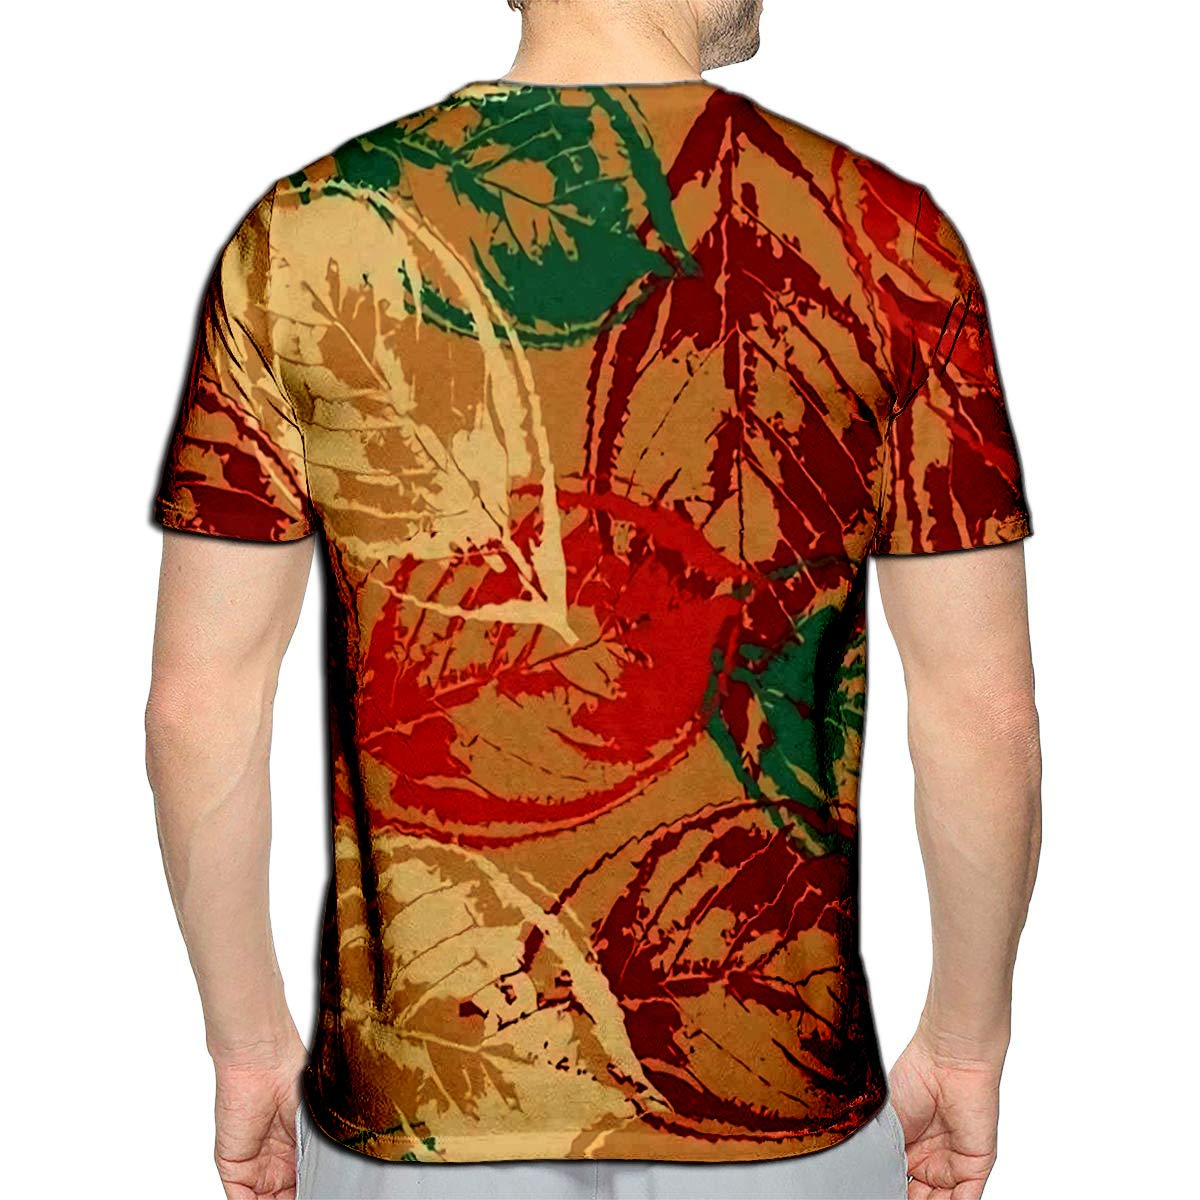 3D Printed T-Shirts Grunge with Colorful Leaves On Warm Short Sleeve Tops Tees